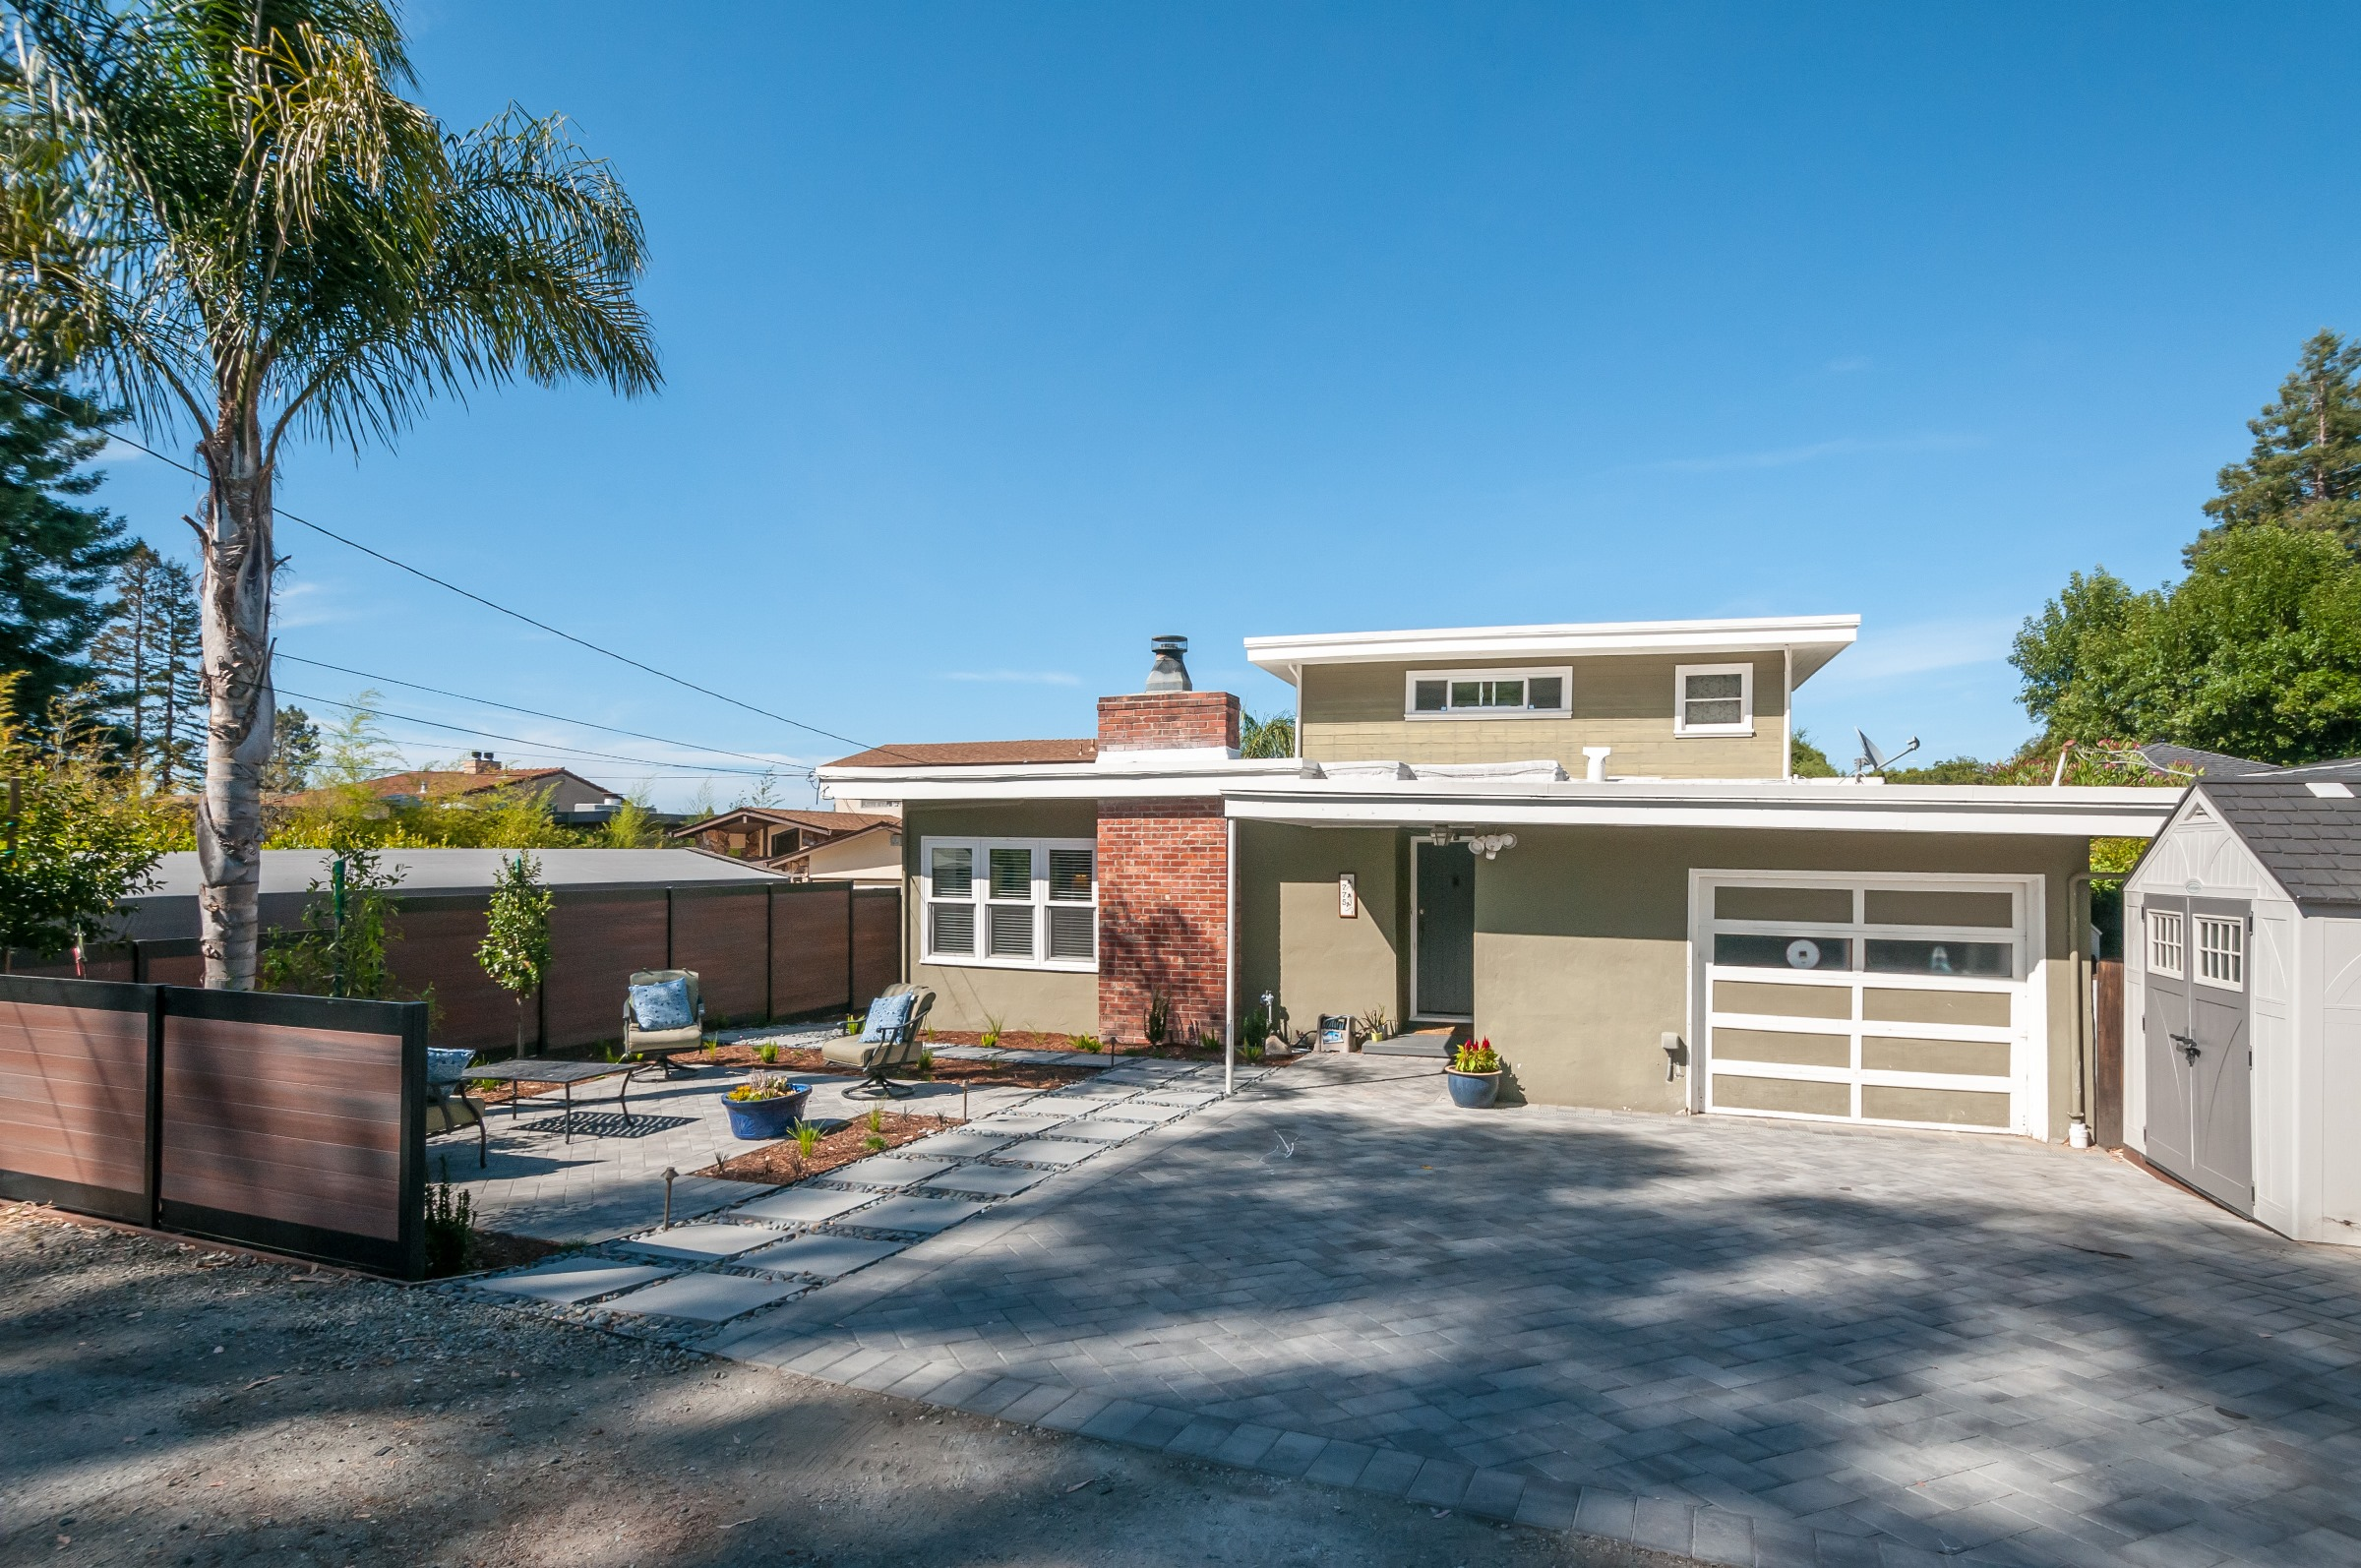 775 Lakeview Way, Emerald Hills, CA 94062